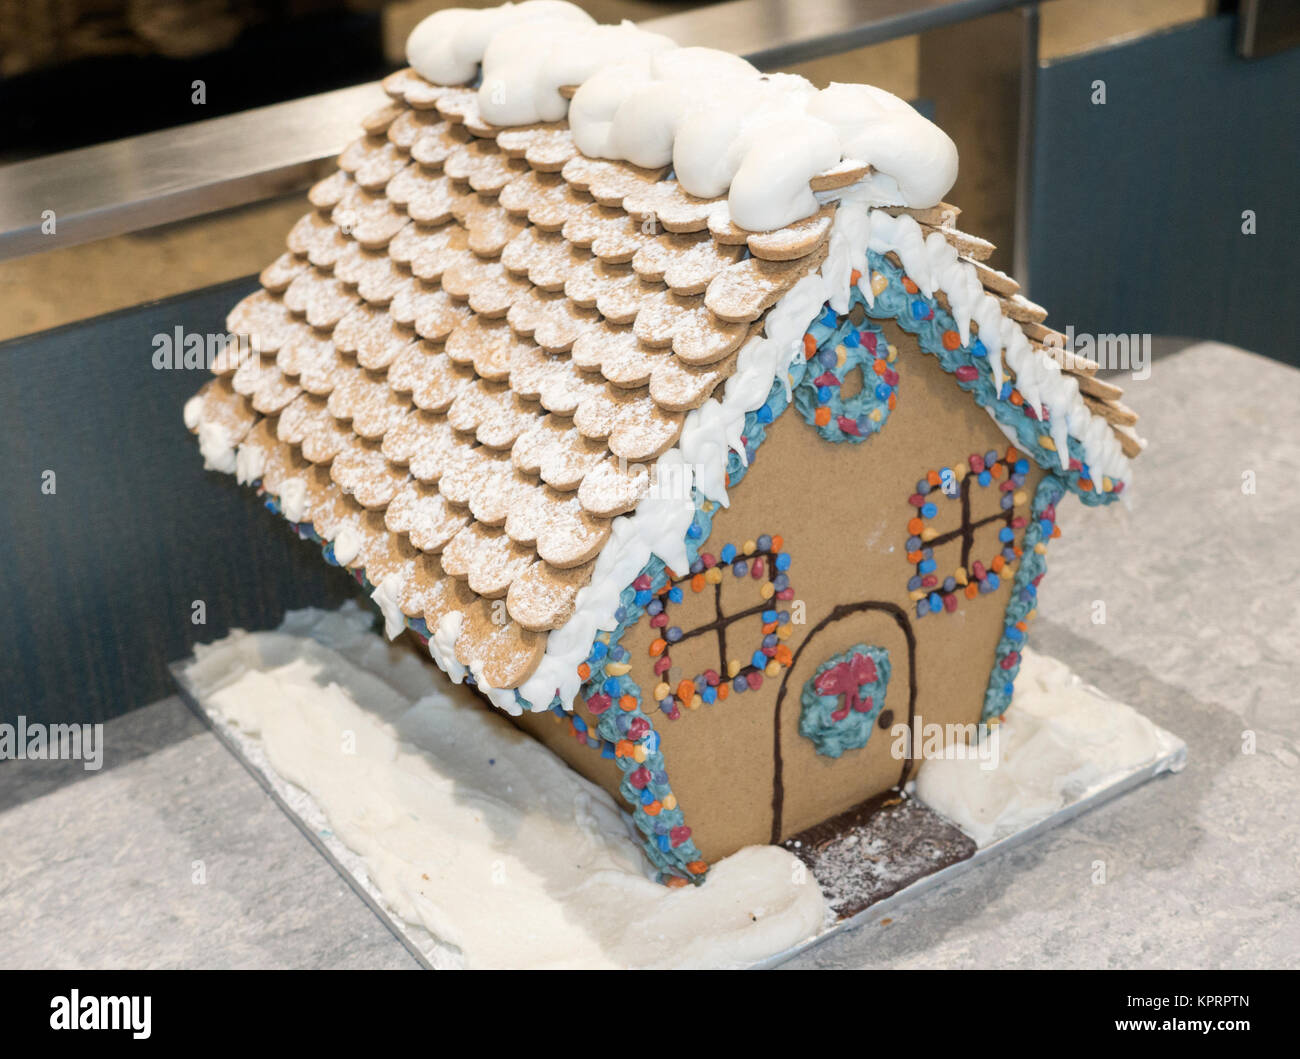 Gingerbread house decorated for the holiday season with heart cookie roof and frosting. St Paul Minnesota MN USA Stock Photo